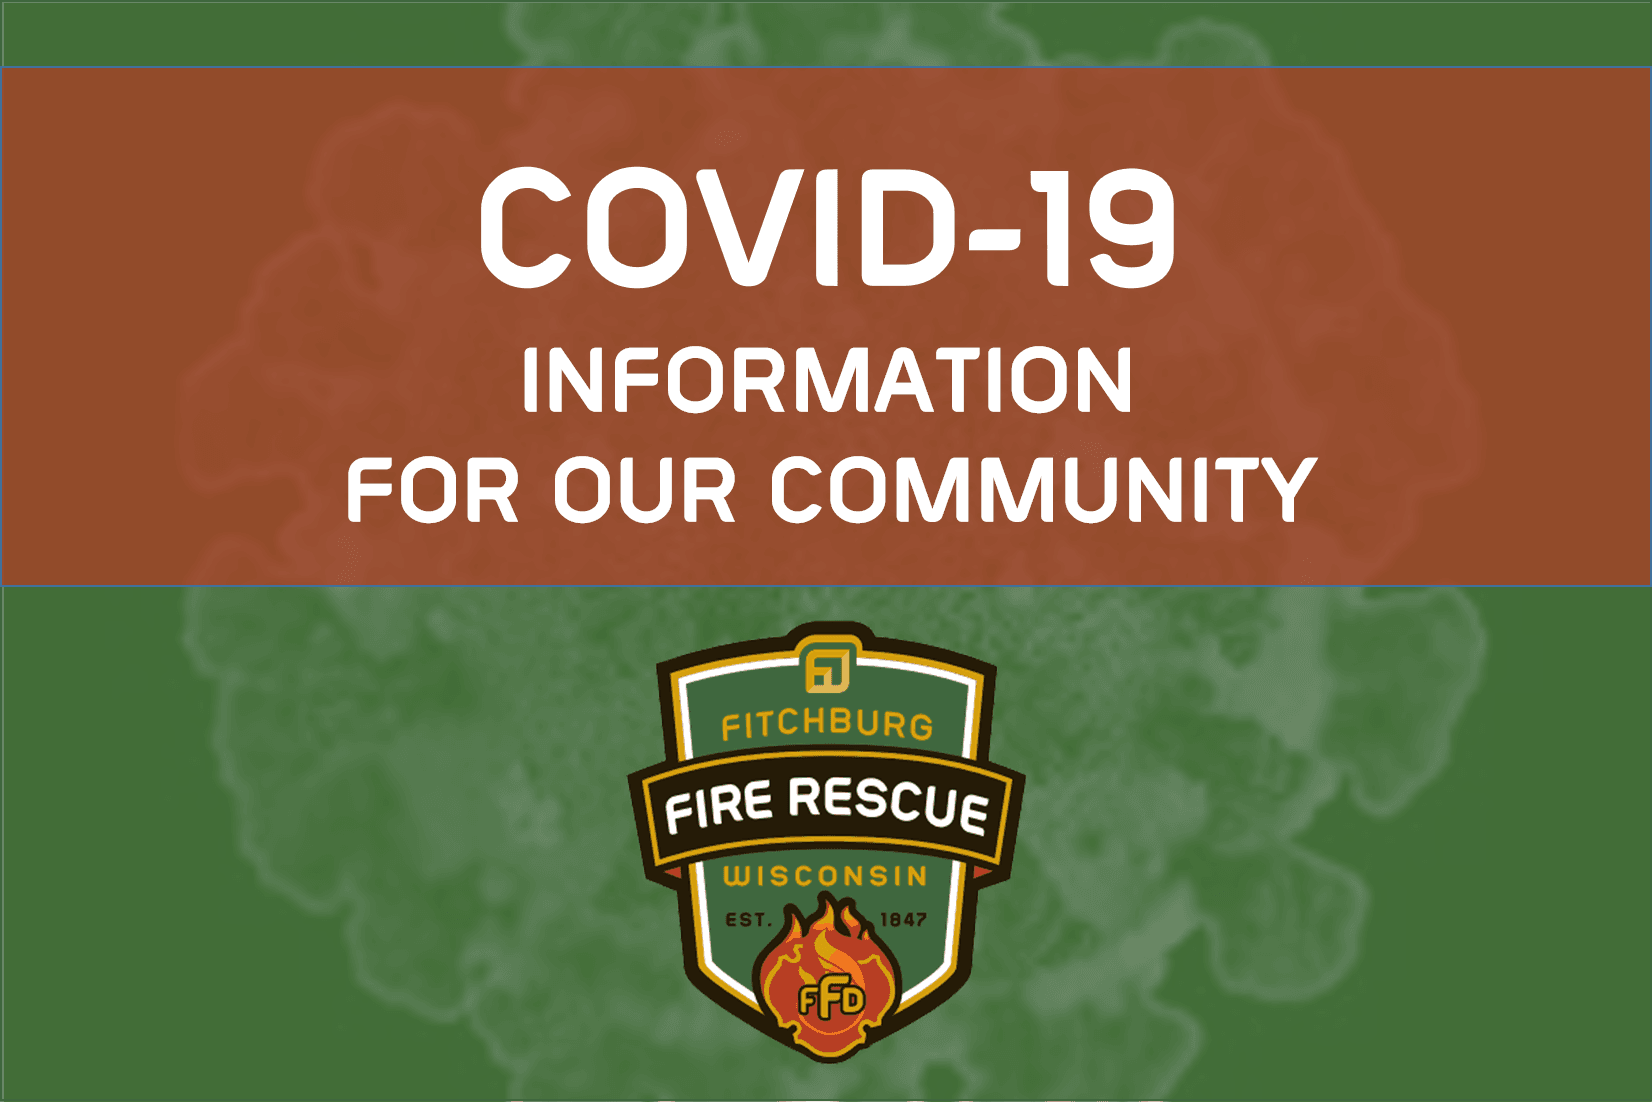 COVID-19 Information for our Community